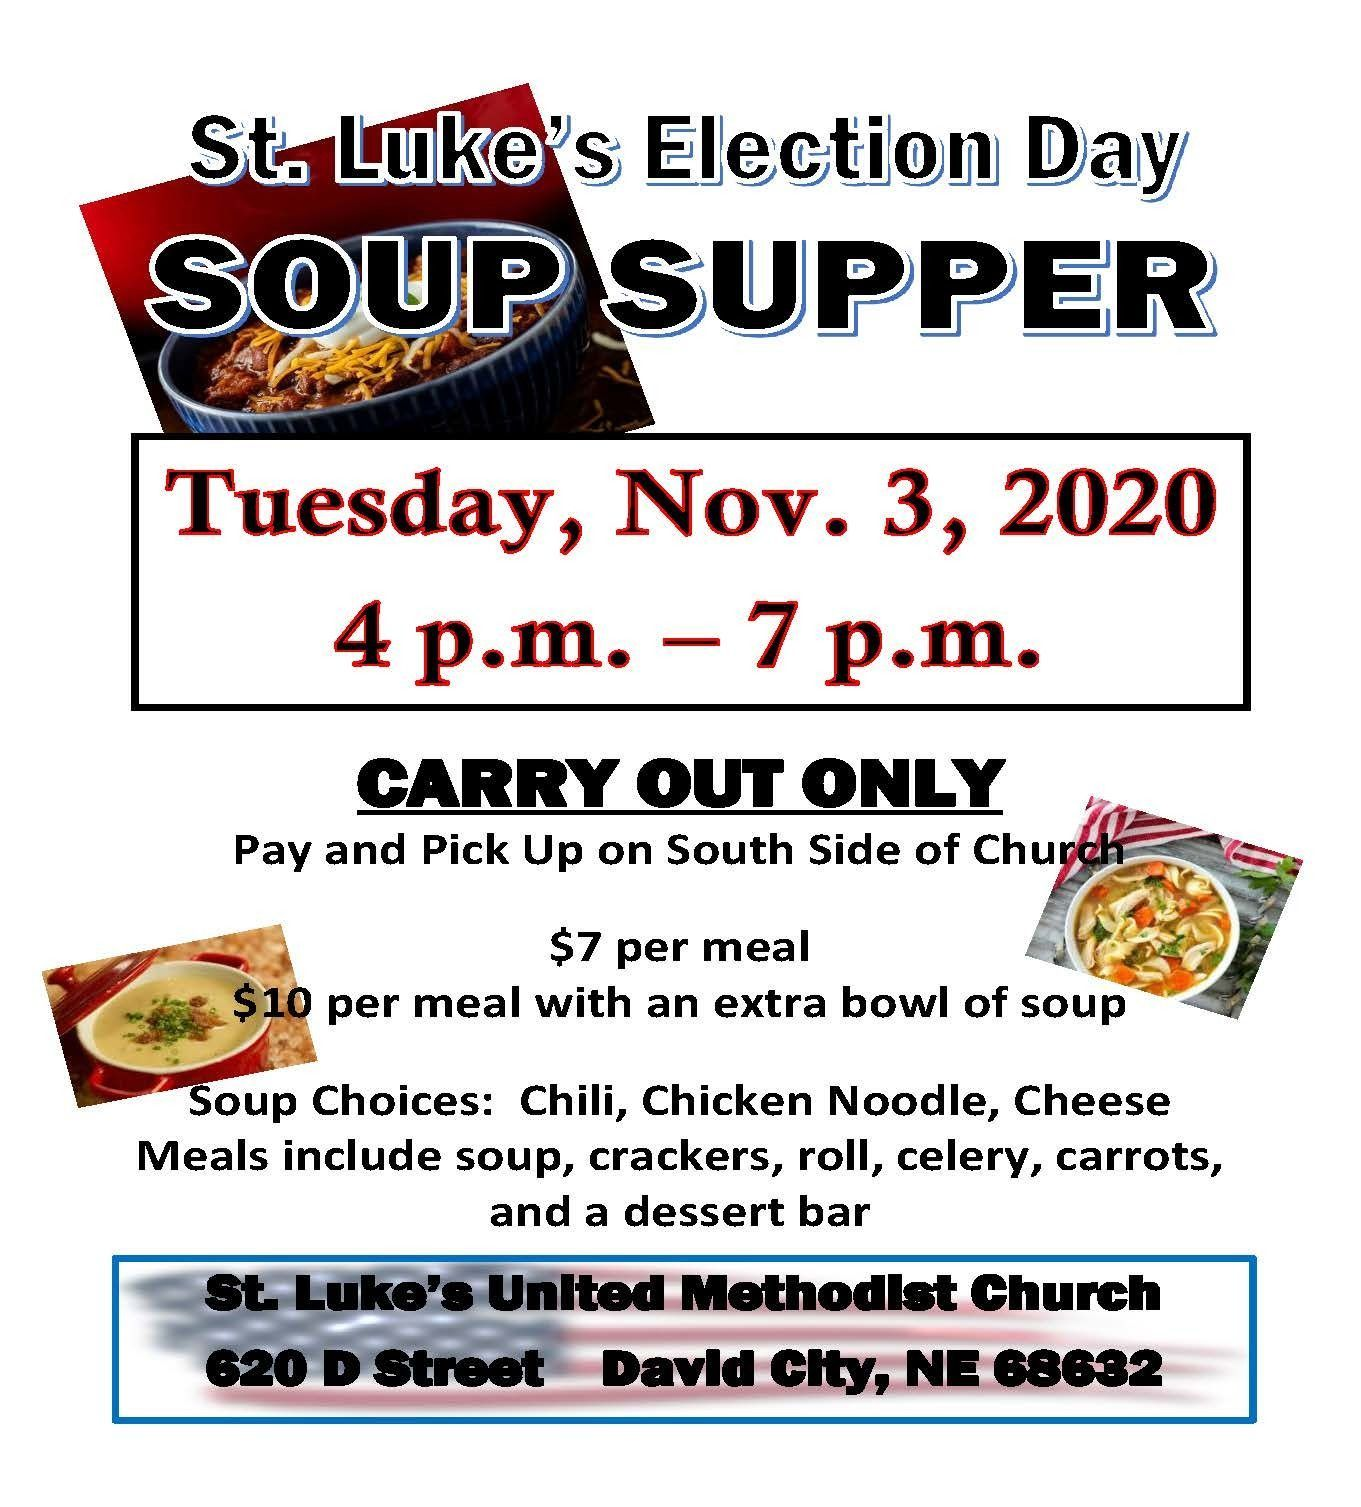 St. Luke's United Methodist Church Election Day Soup Supper